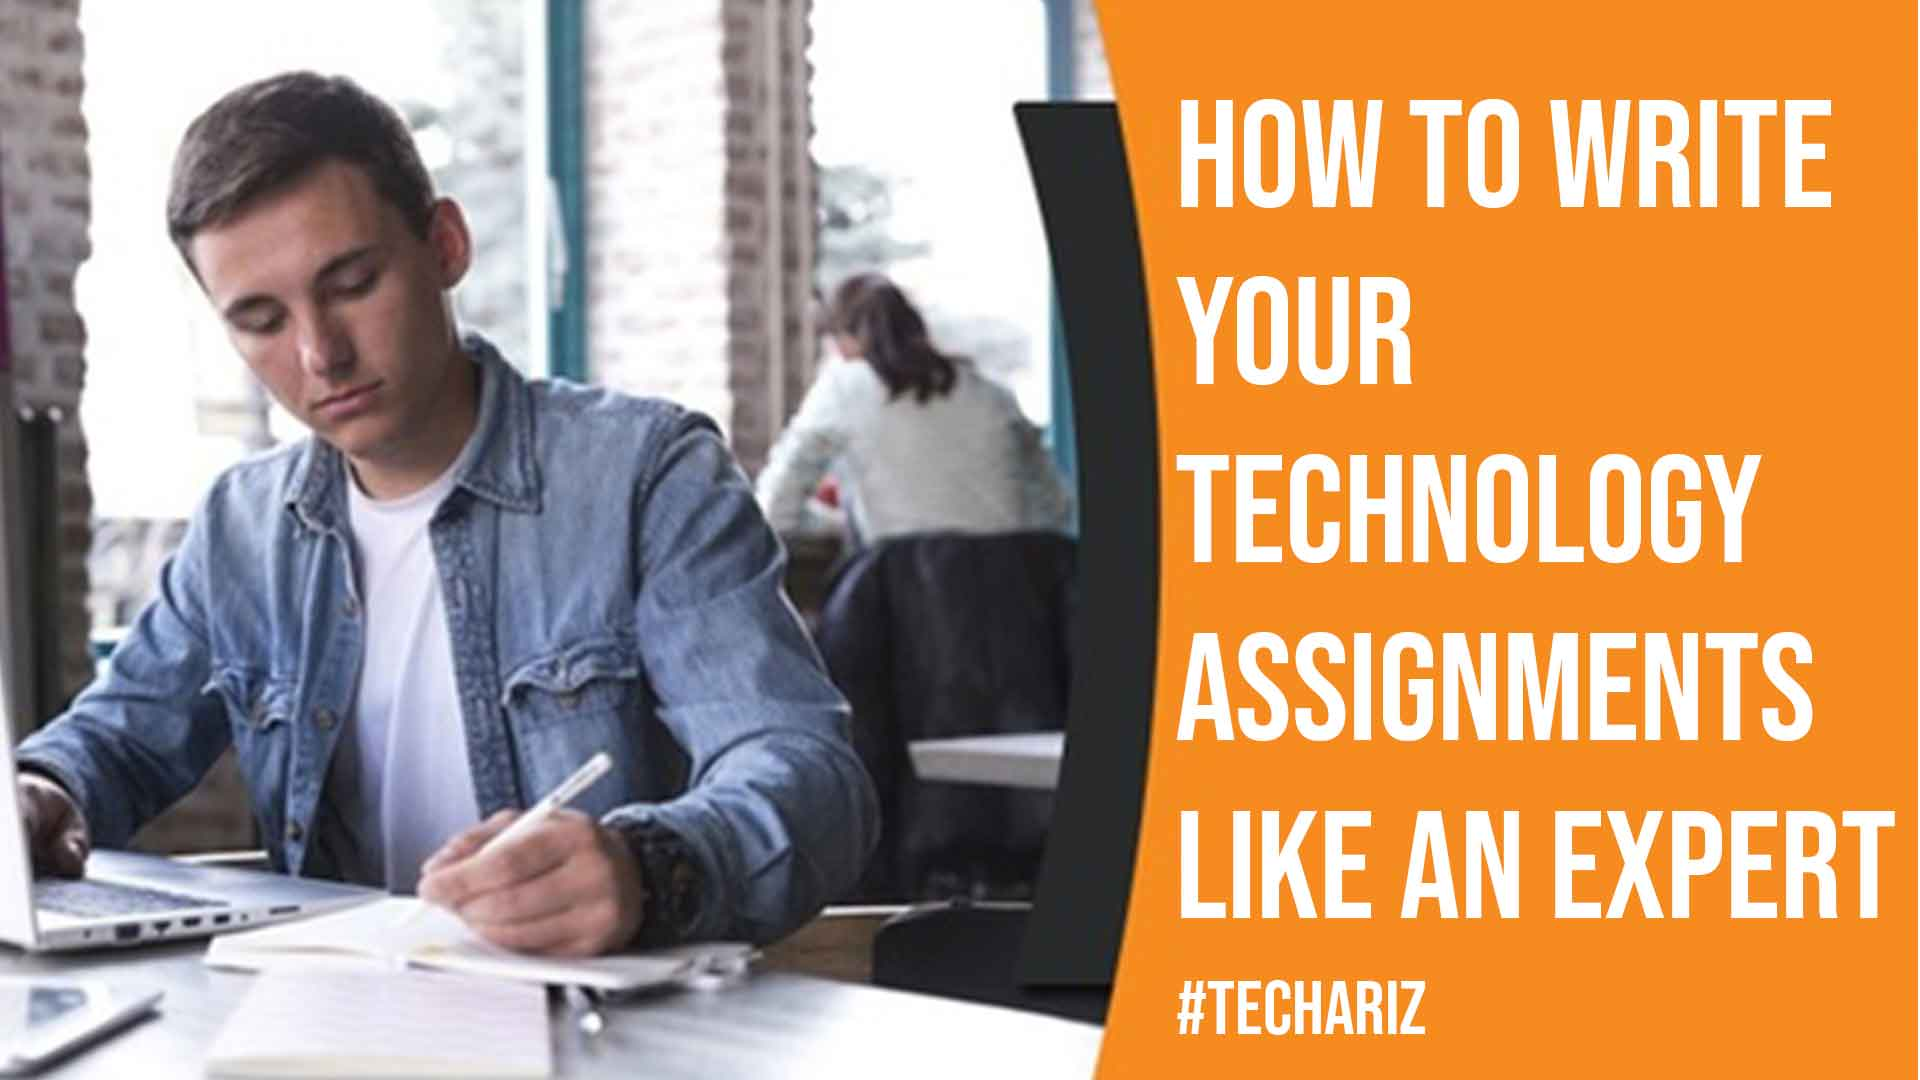 How to Write Your Technology Assignments Like an Expert